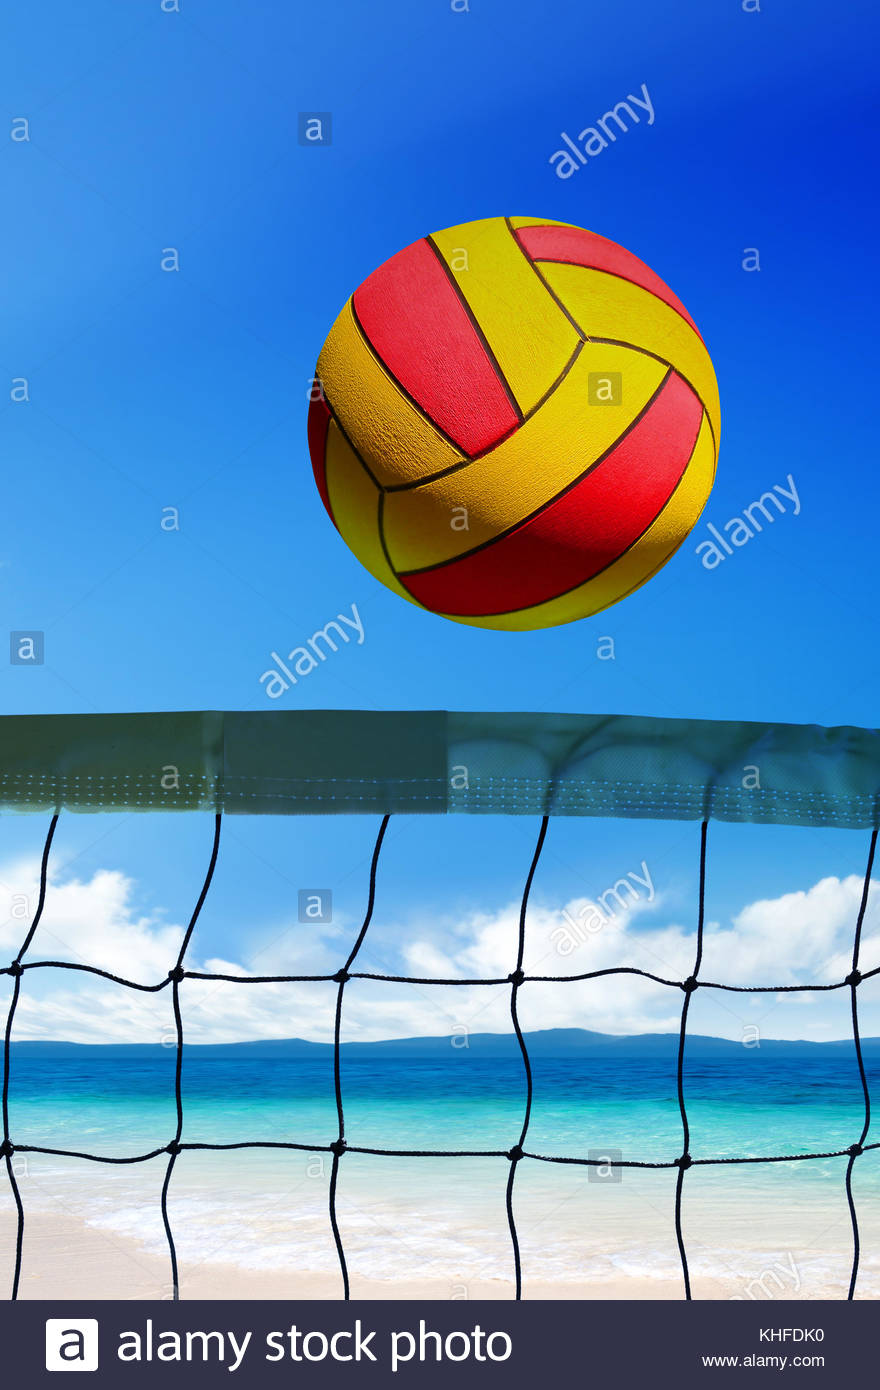 Volleyball Ball Over Grid On Beach At Sunny Day Stock Photo In 2020 Sunny Day Images Stock Photos Photo